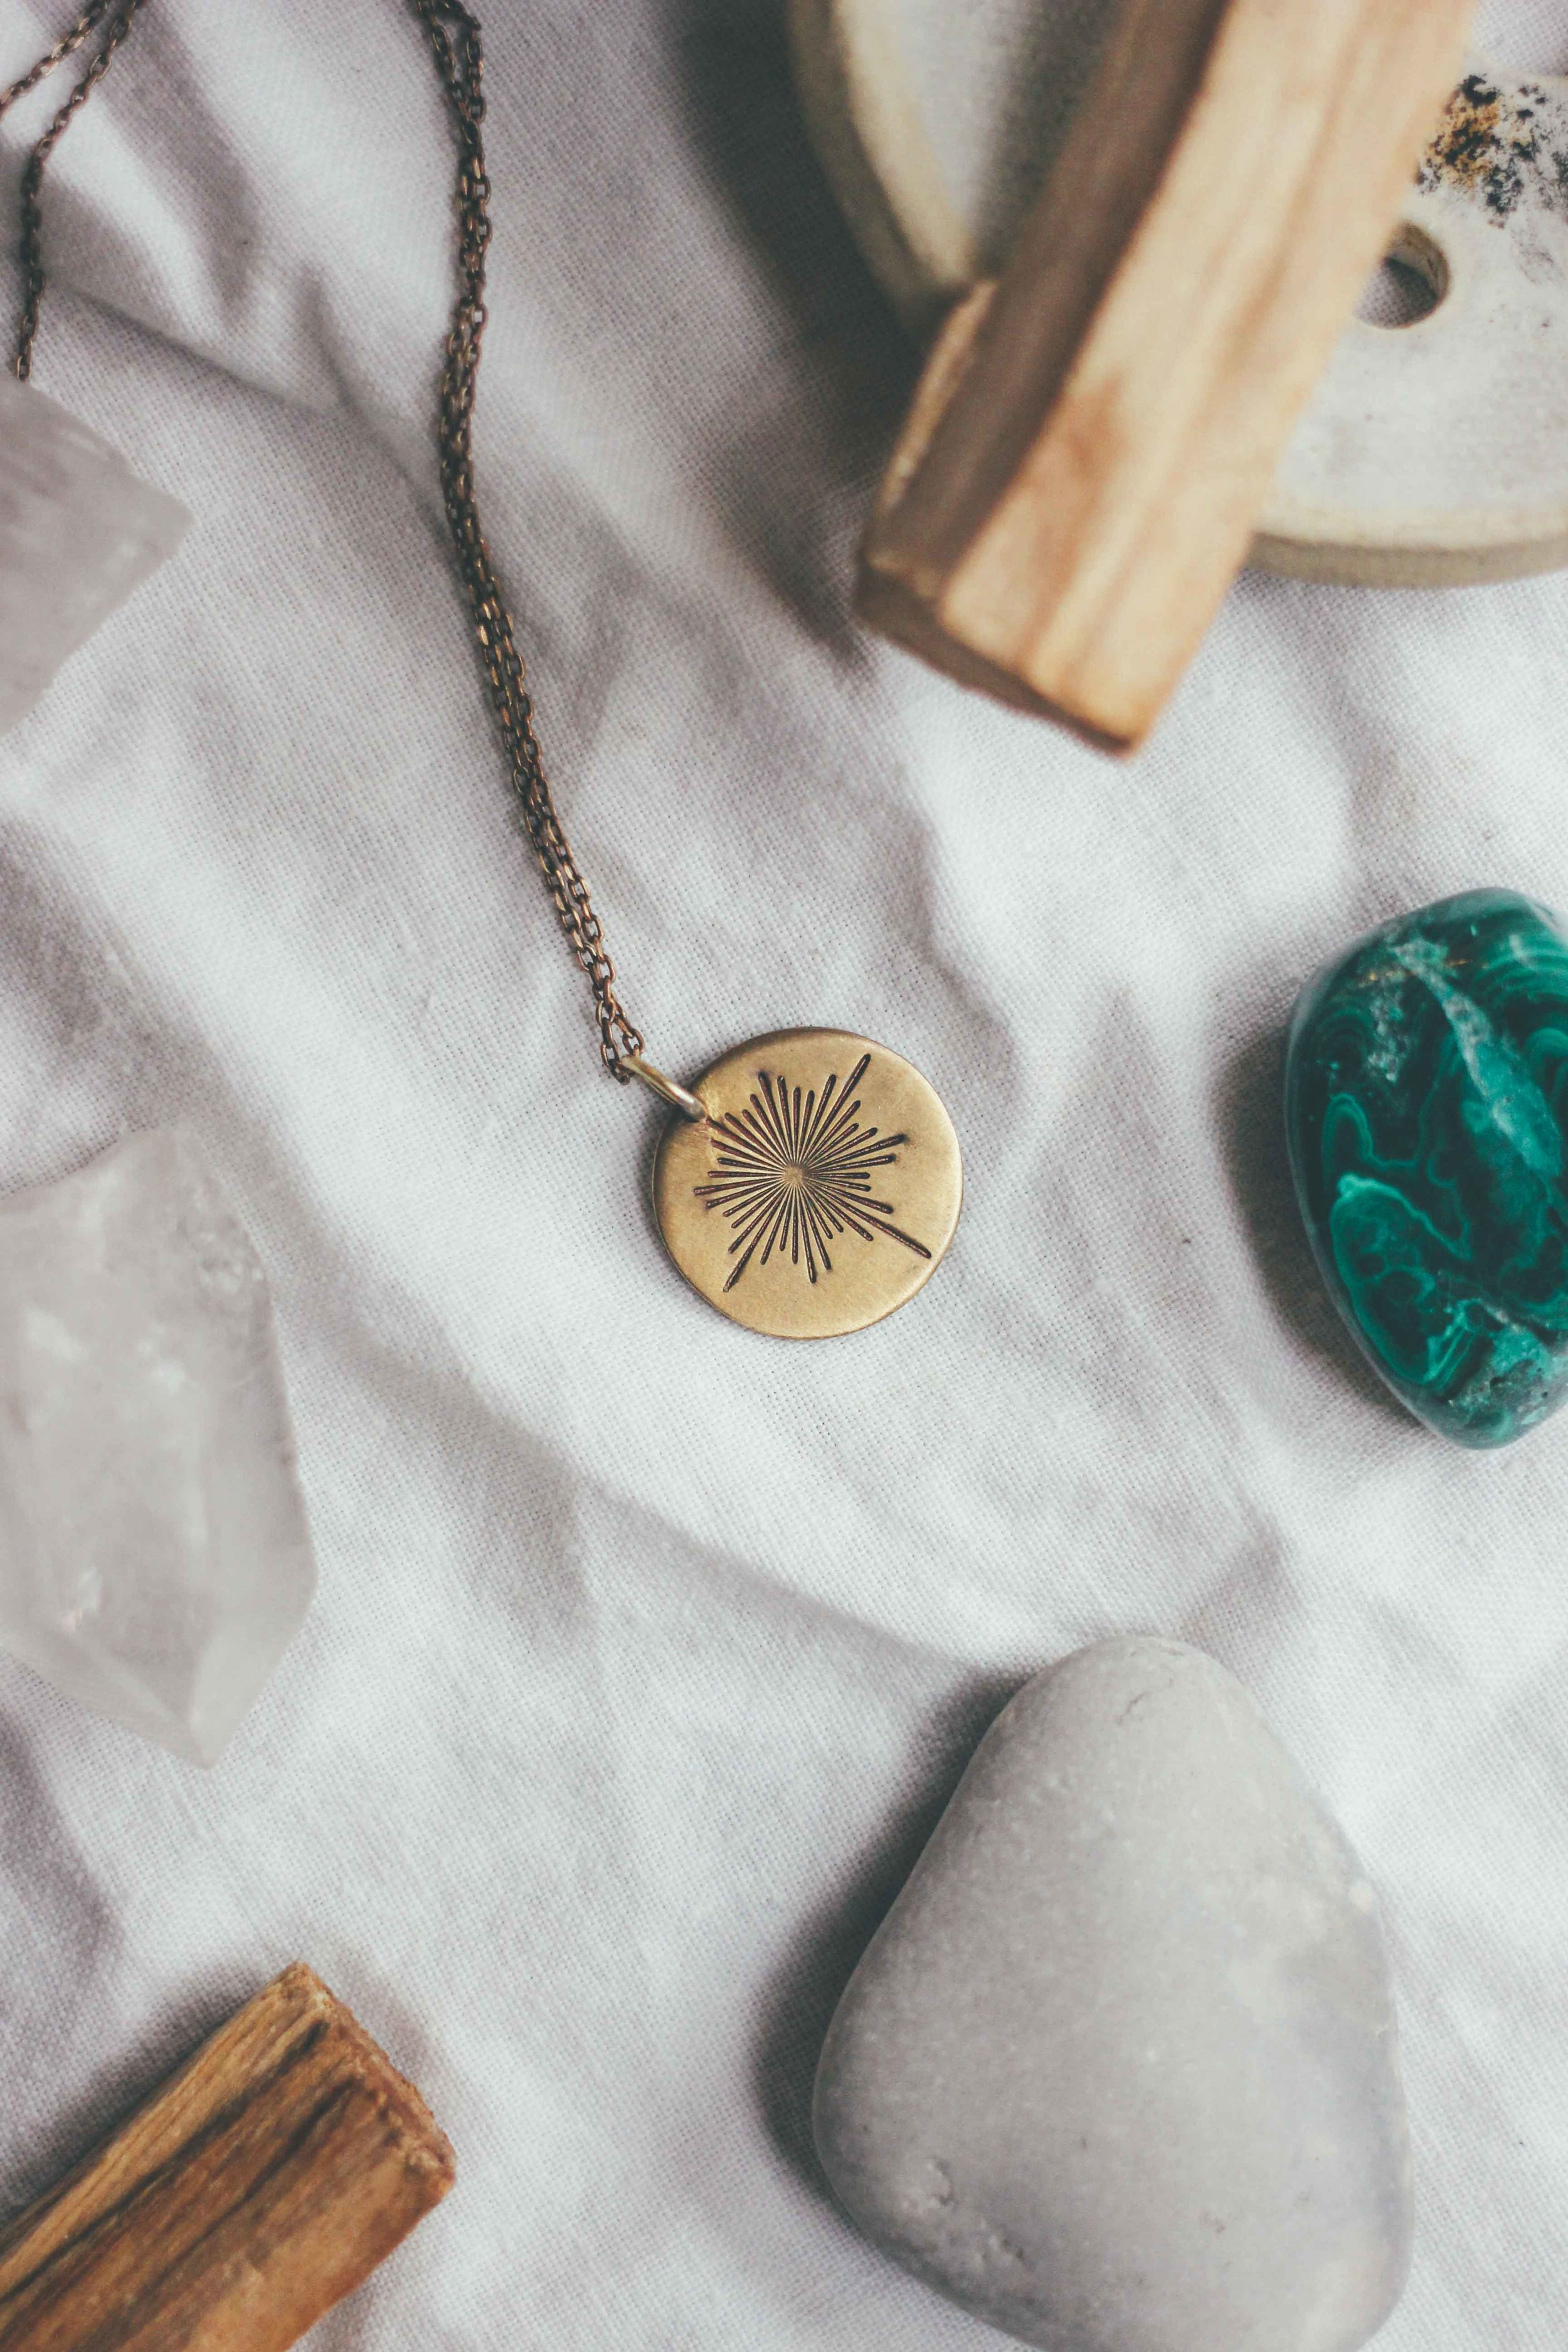 Fair trade ethical jewelry - The Well Essentials